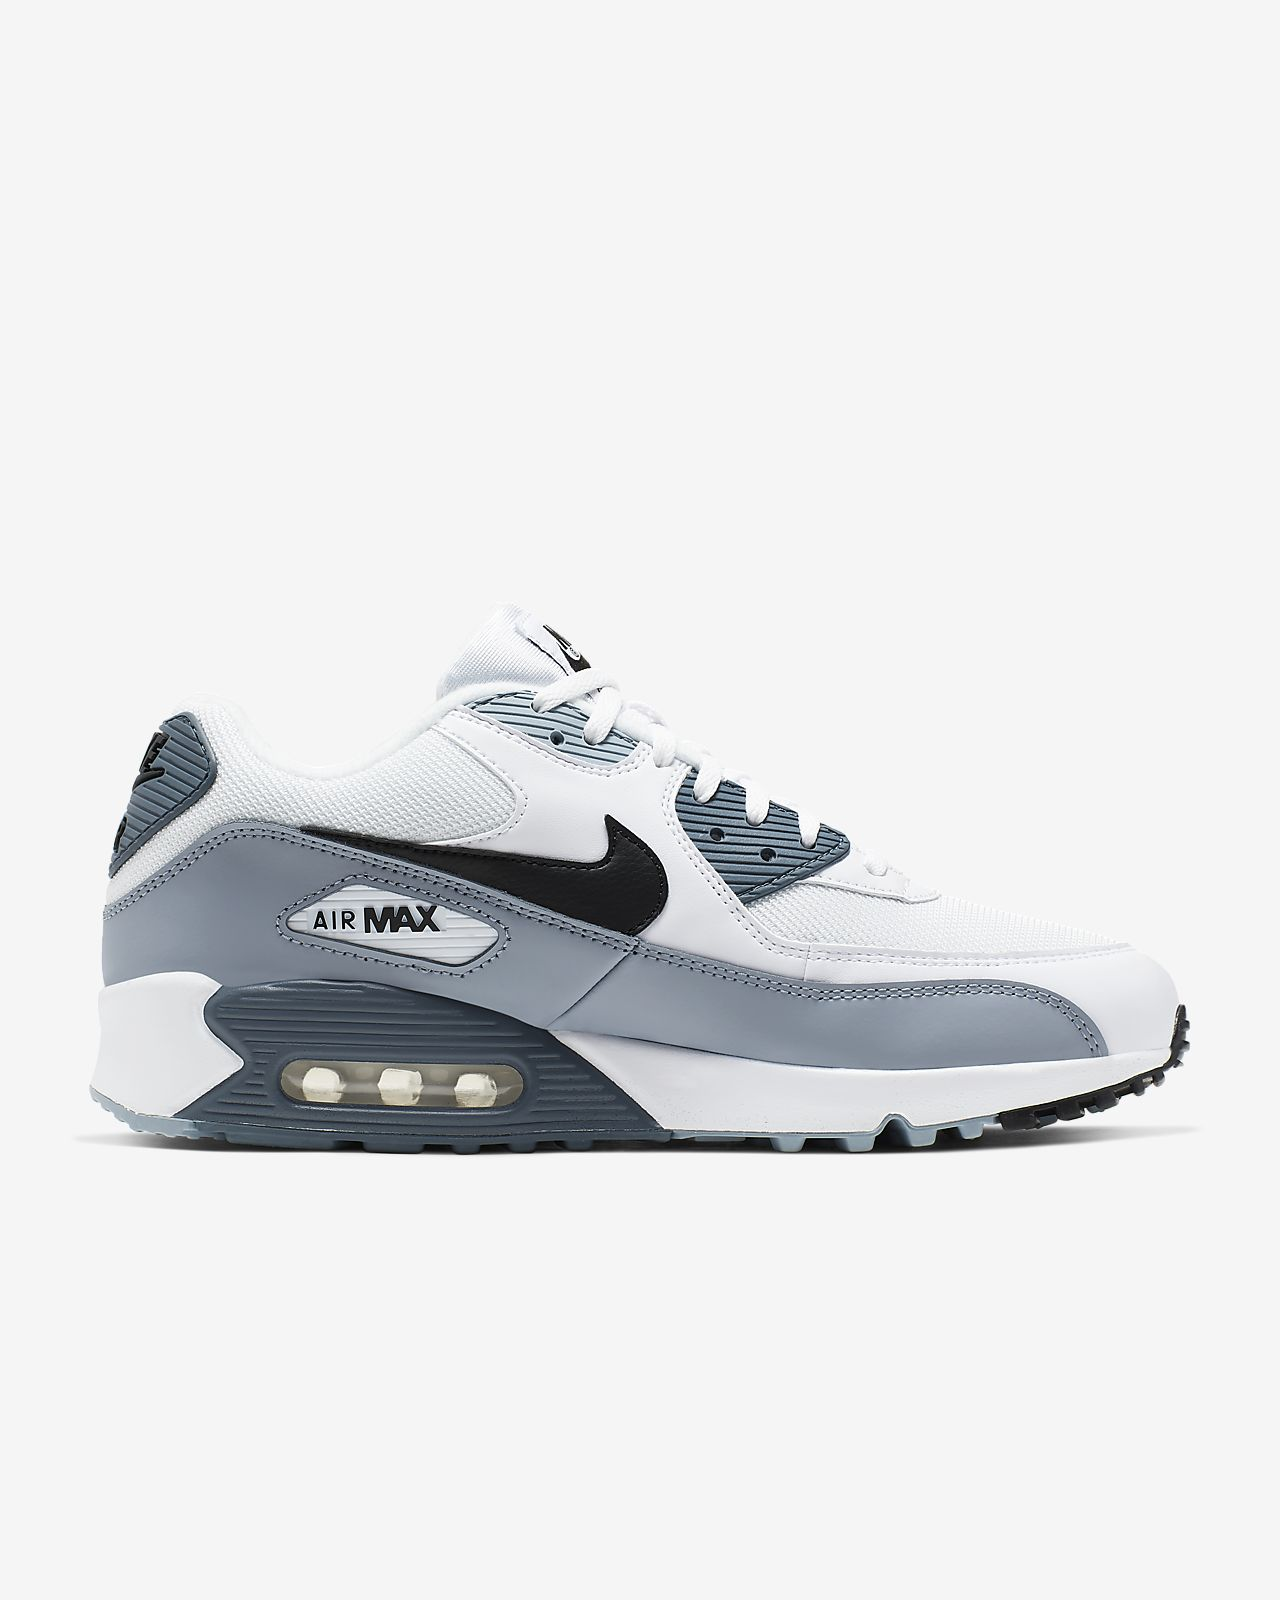 separation shoes 7a2cd 08ef7 ... Nike Air Max 90 Essential Men s Shoe